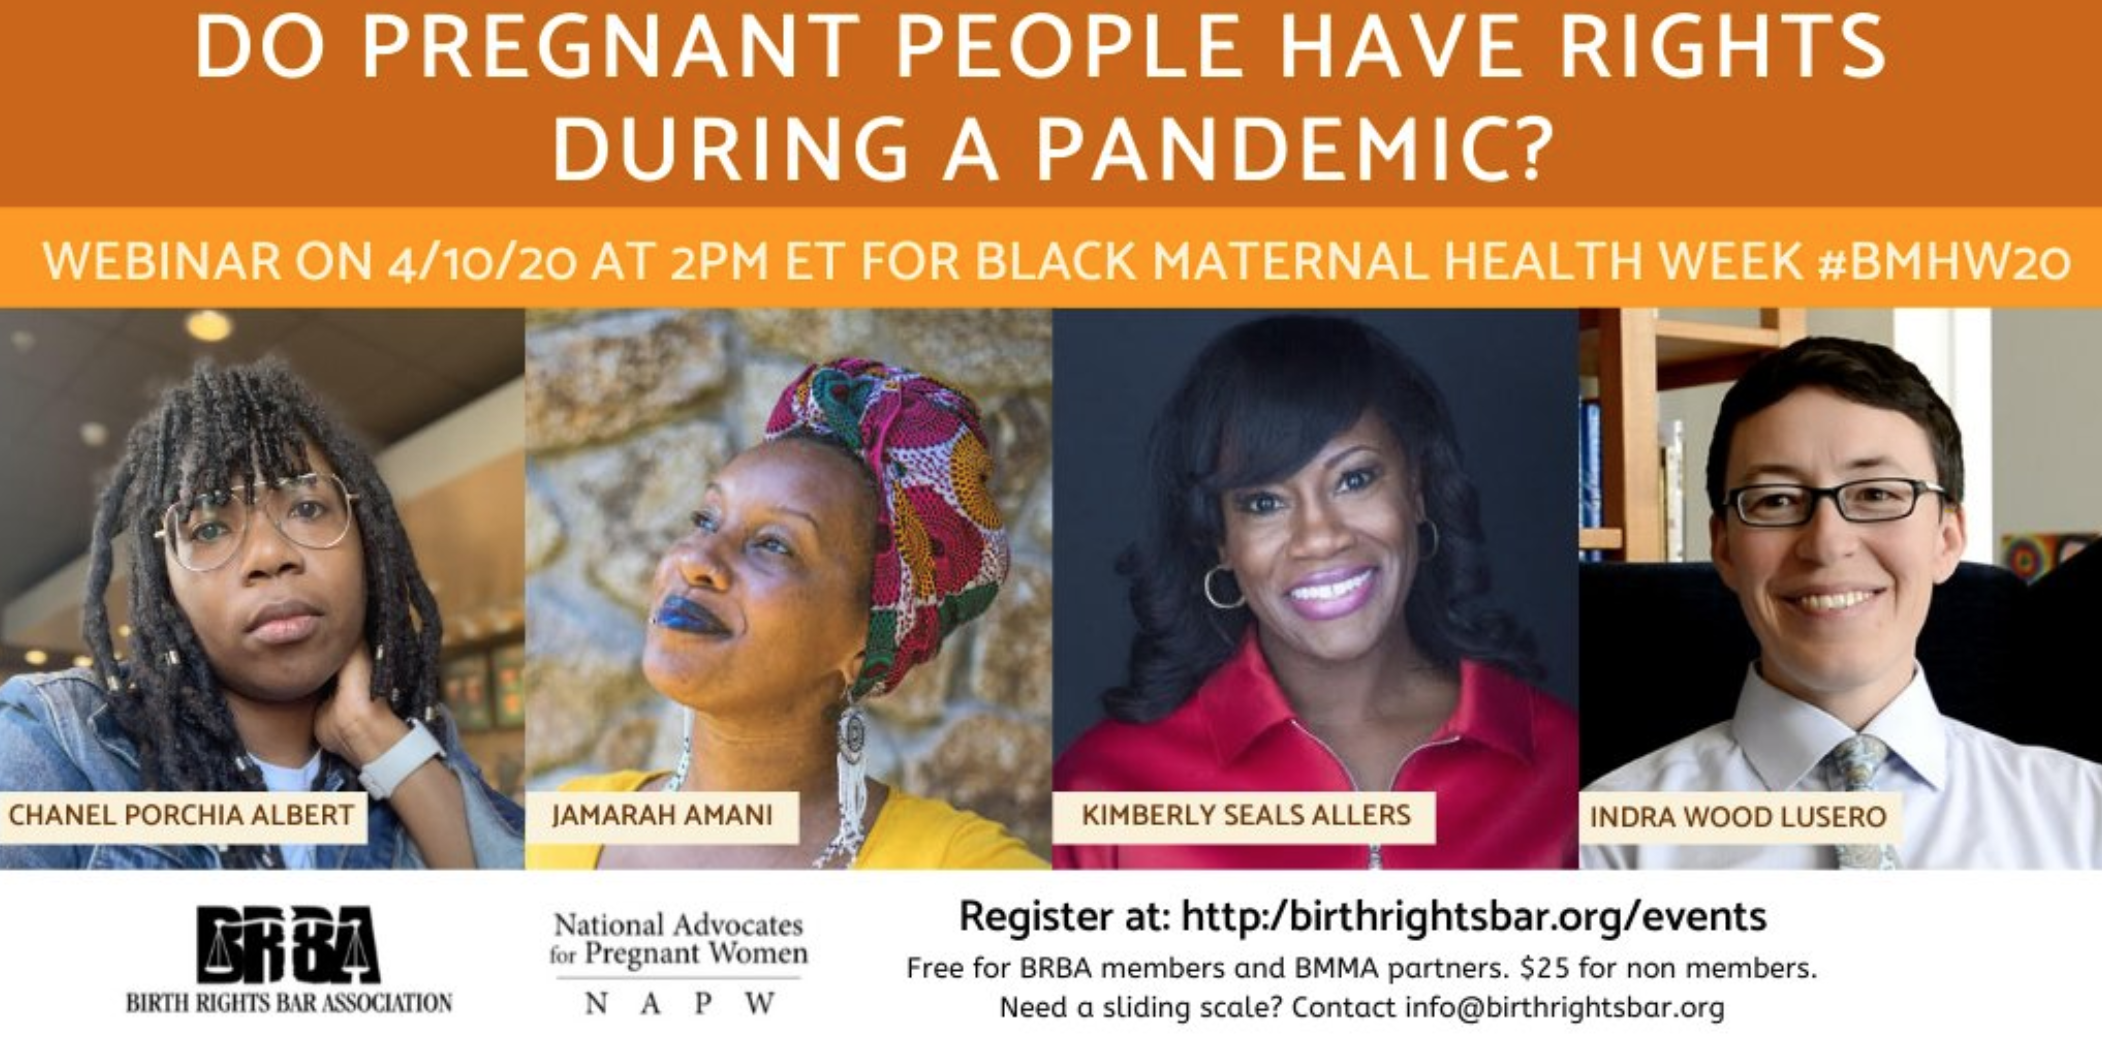 NAPW/BRBA Webinar: Do Pregnant People Have Rights During a Pandemic?